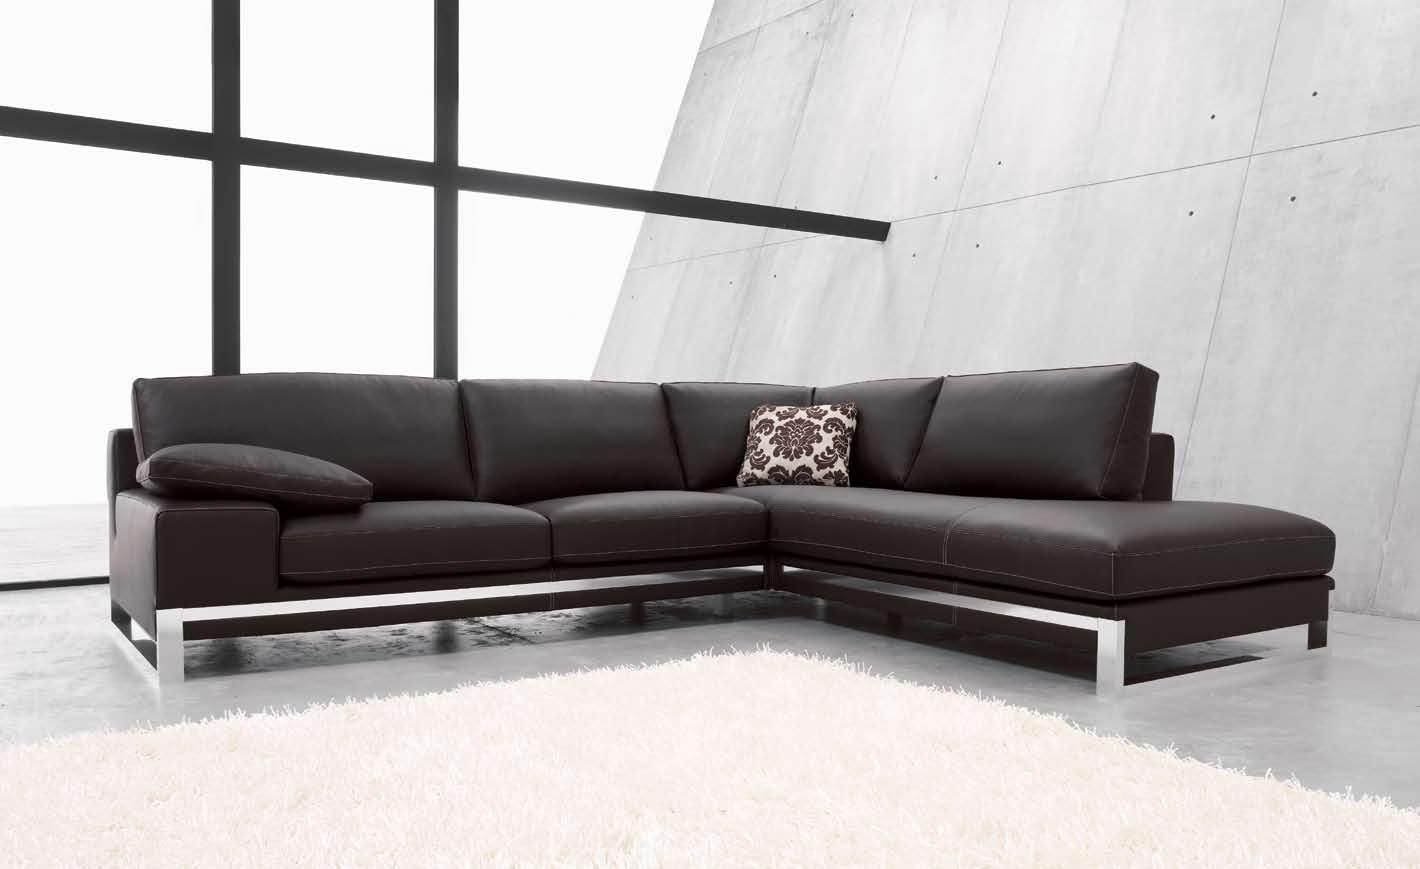 Brilliant Leather Corner Sofa Leather Corner Sofas Groups In A Within Corner Sofa Leather (Image 3 of 15)